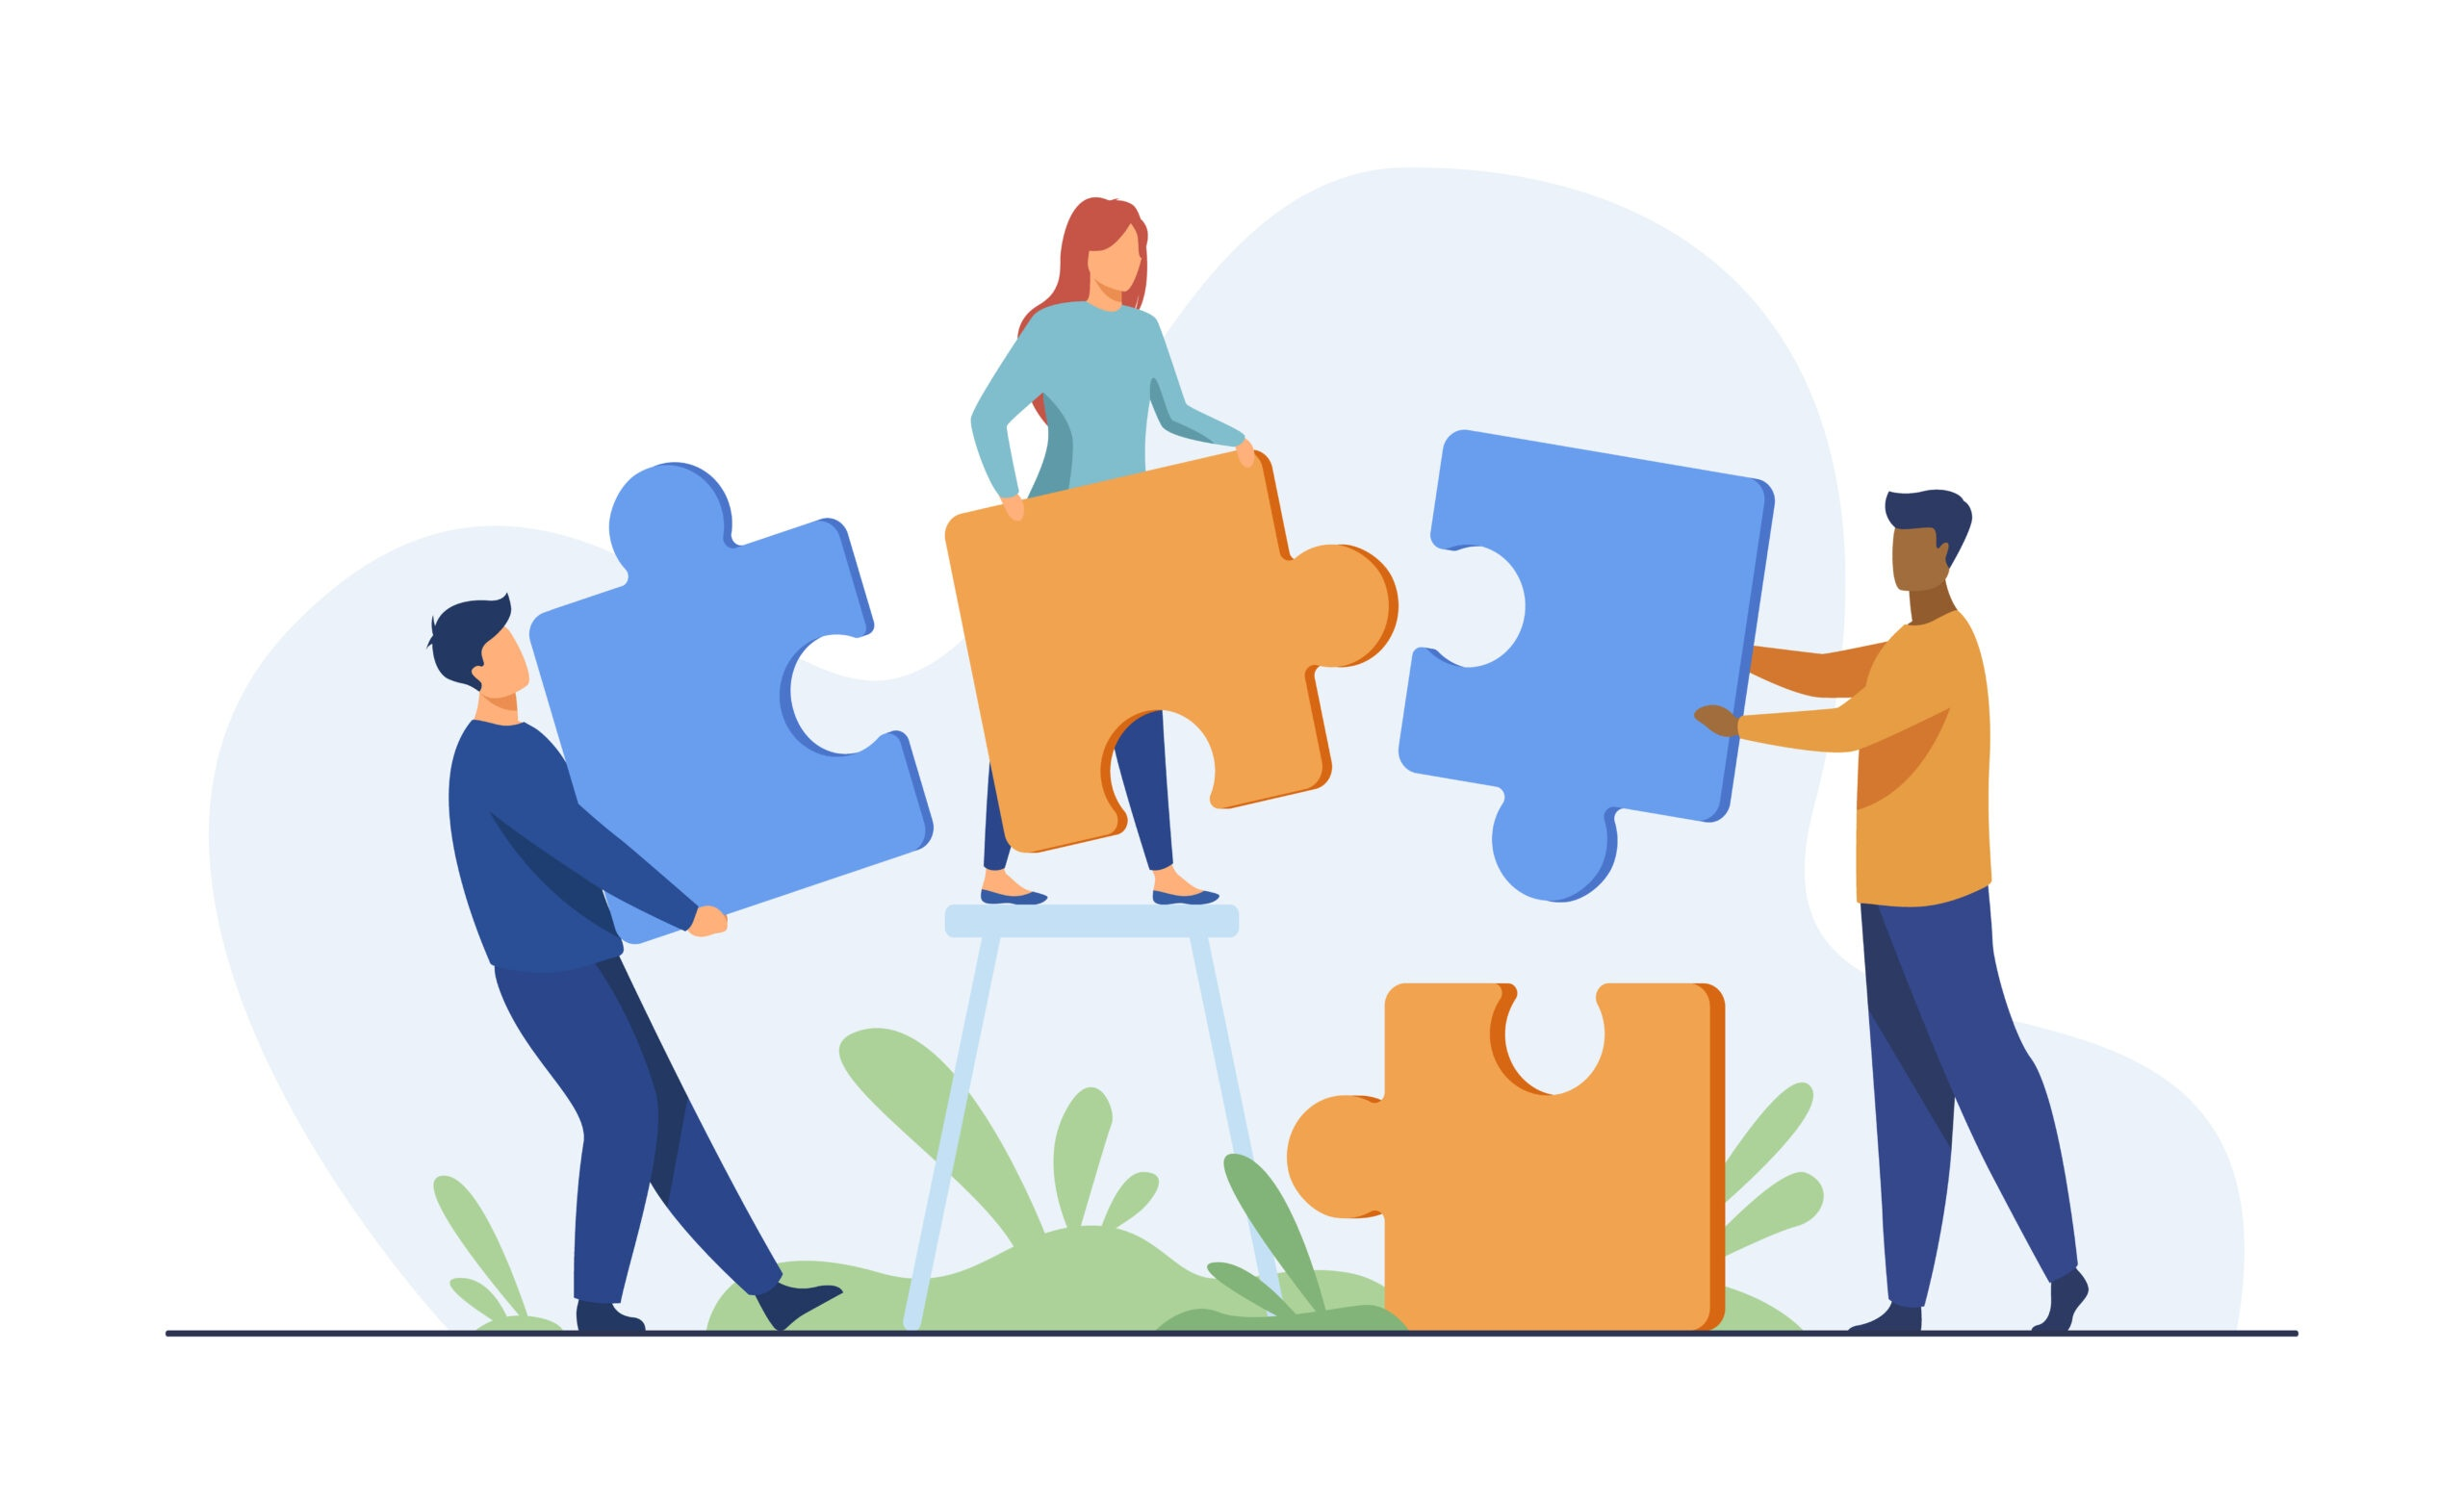 Partners holding big jigsaw puzzle pieces